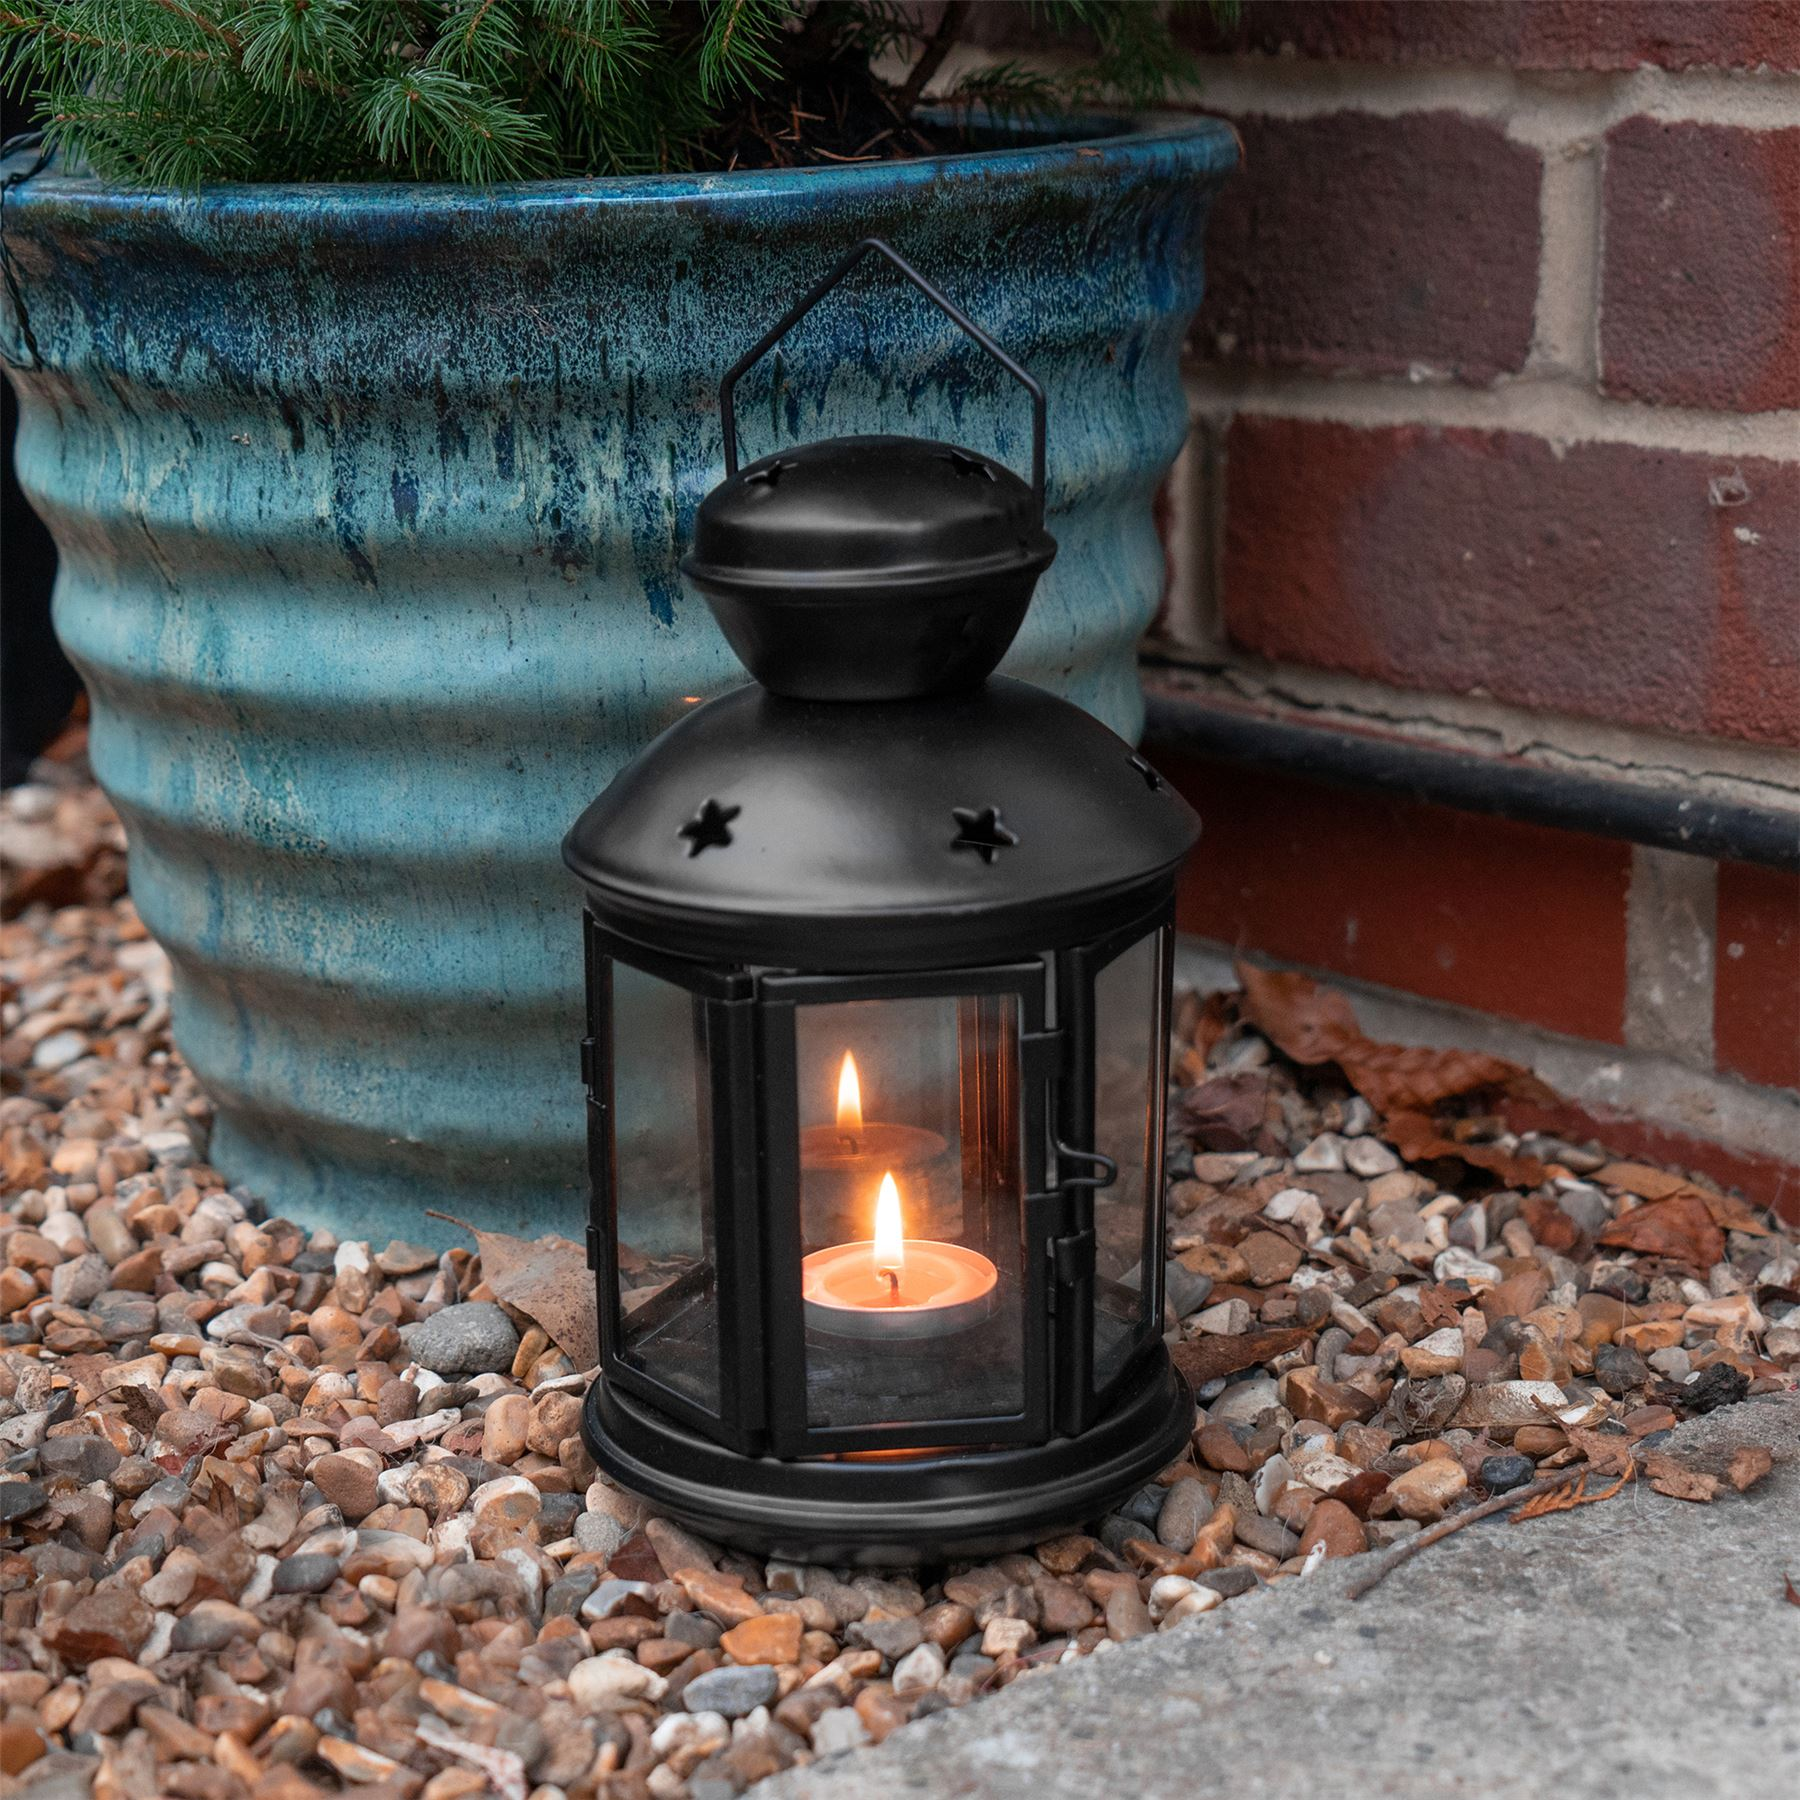 Metal-Candle-Lanterns-Tealight-Holders-Vintage-French-Moroccan-Style-20cm-x2 thumbnail 4